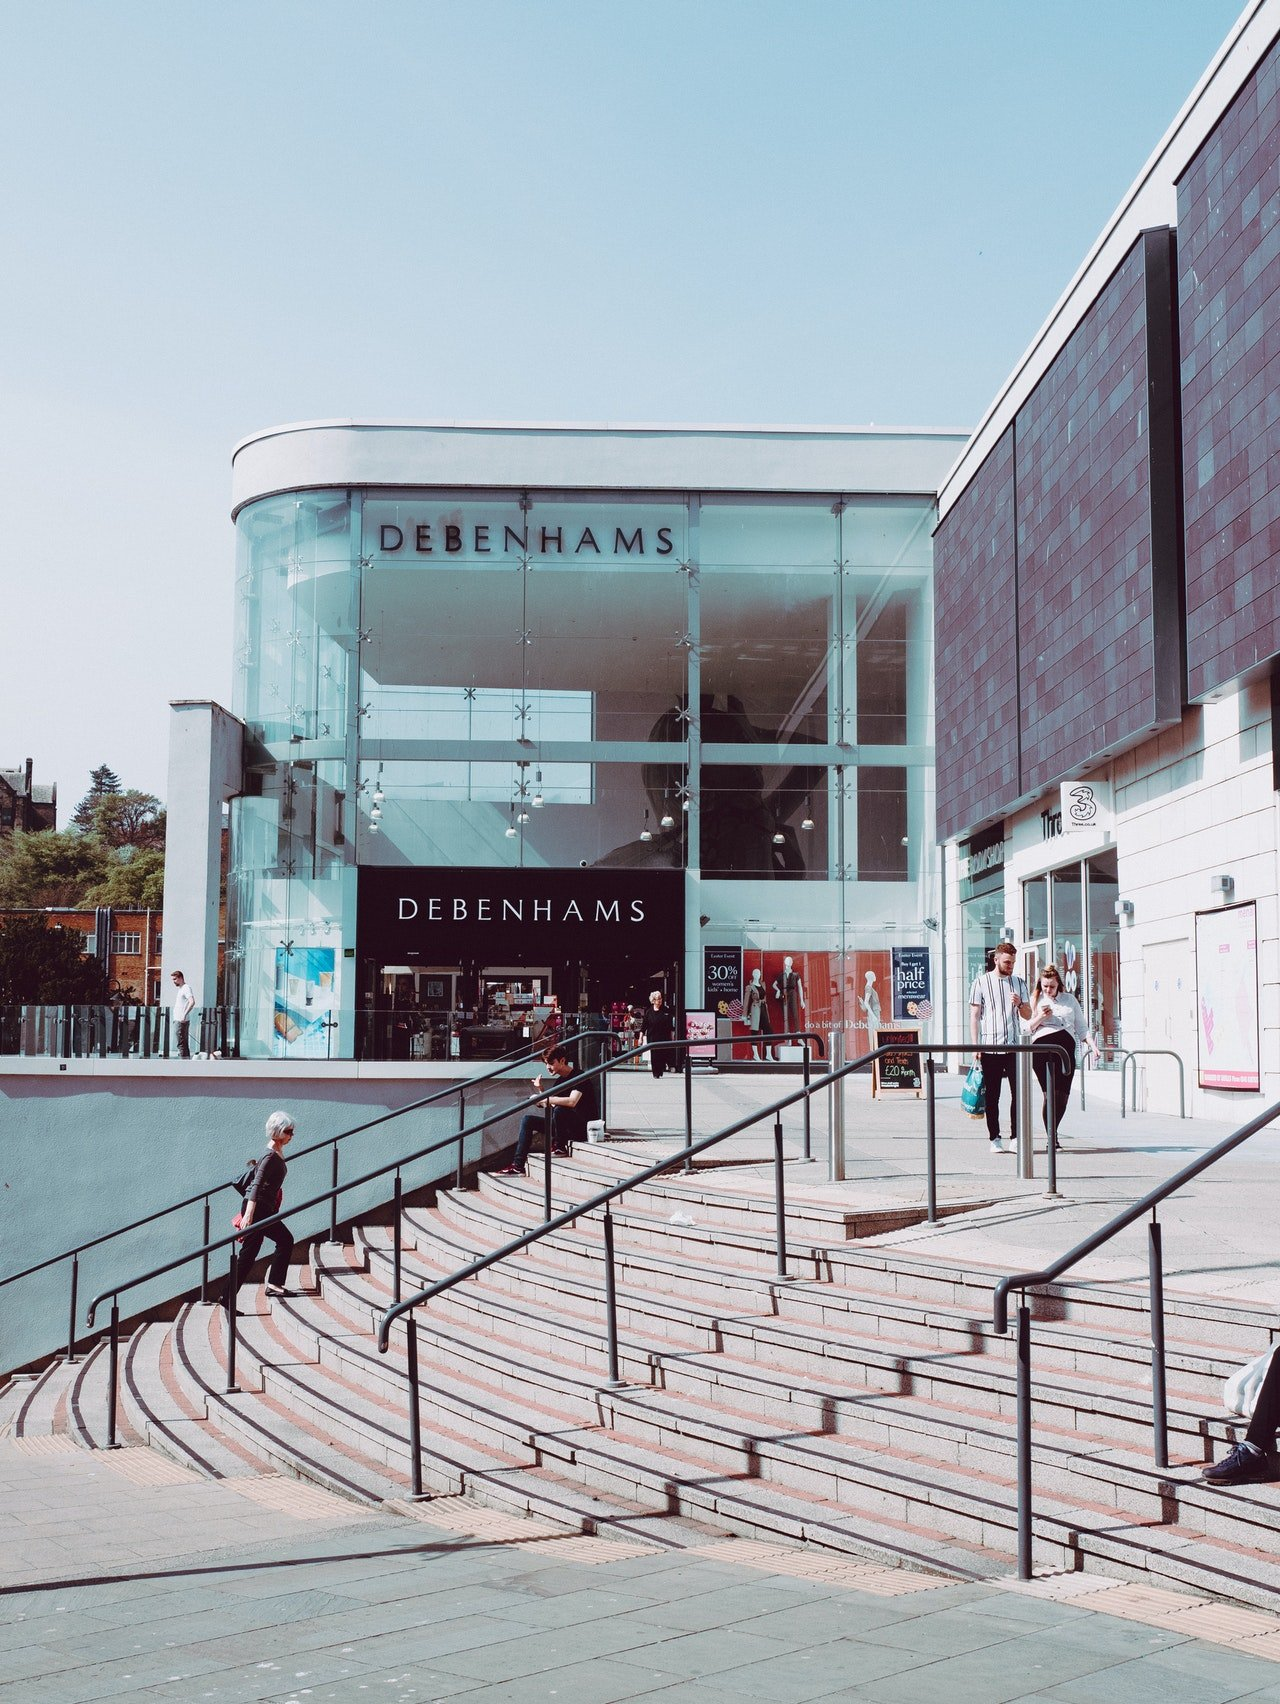 Photo of a shopping mall | Photo: Pexels